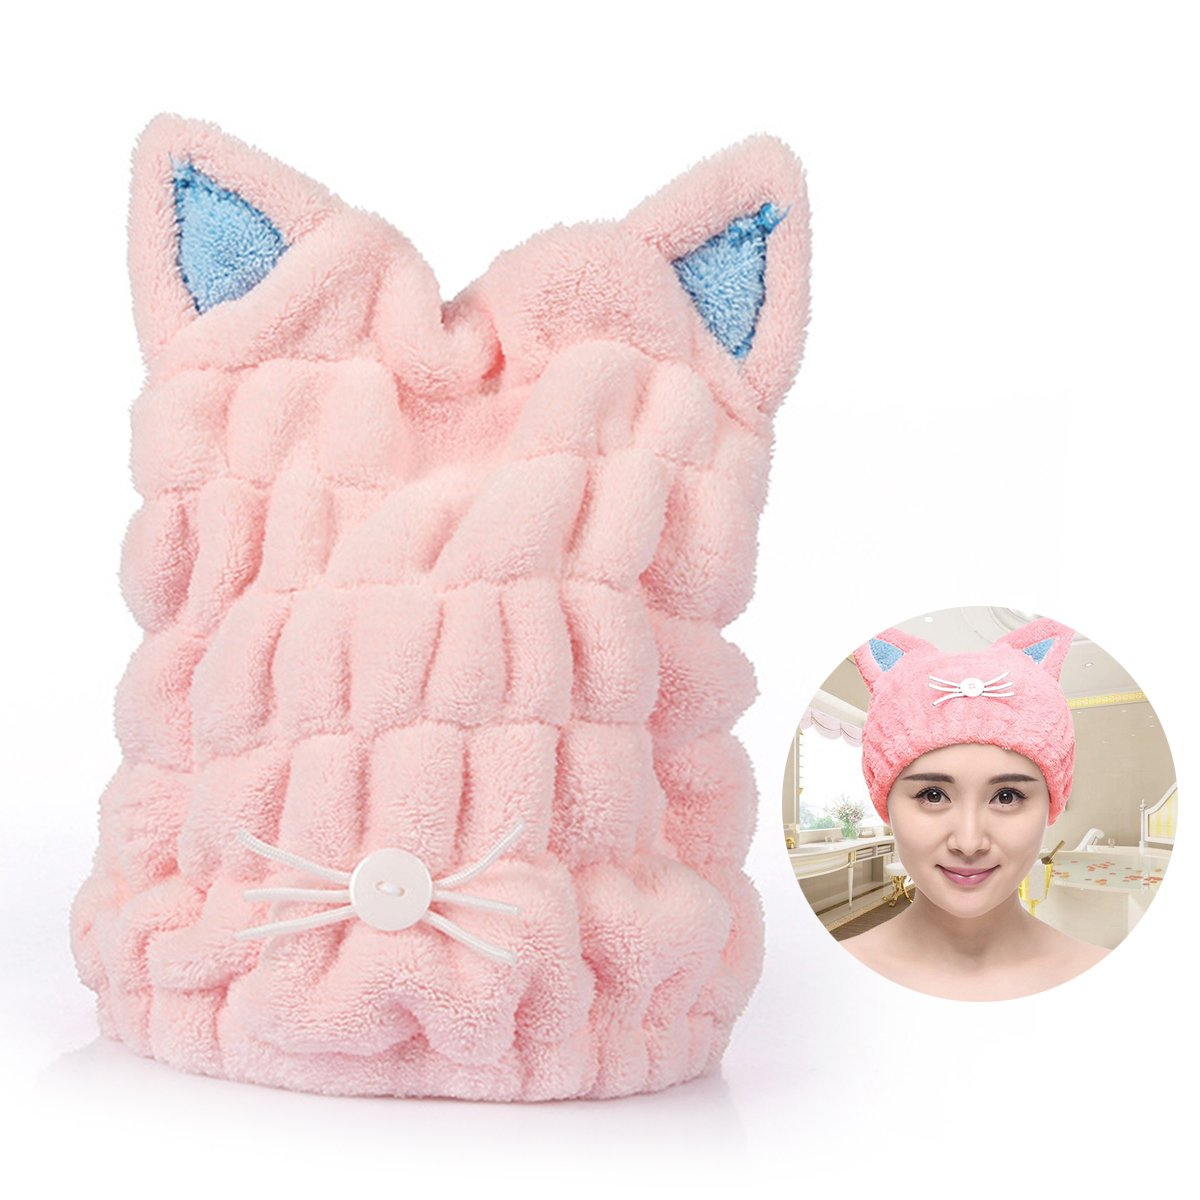 Soft Microfiber Cute Cat Ear Hair Drying Cap Super Absorbent Quick Drying Hair Towel Wrap With Coral Fleece For Womens Girls Ladies Bath Accessories (2pcs) Suces